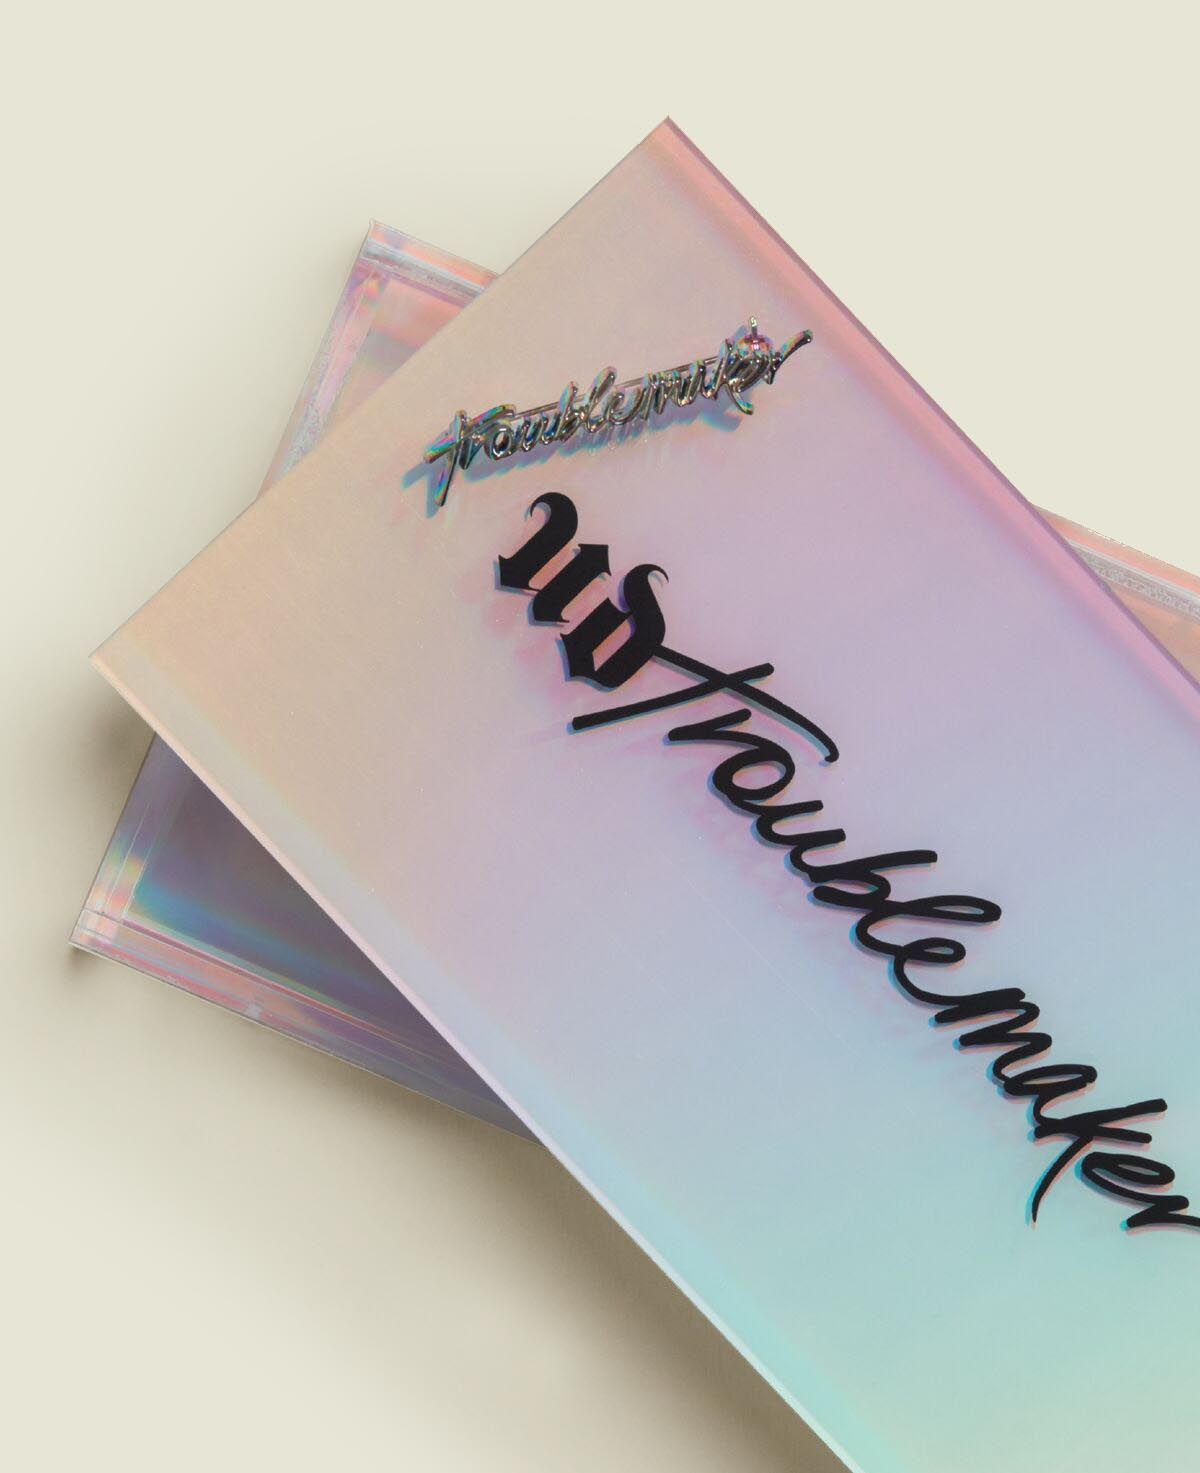 Holographic acrylic box with pin